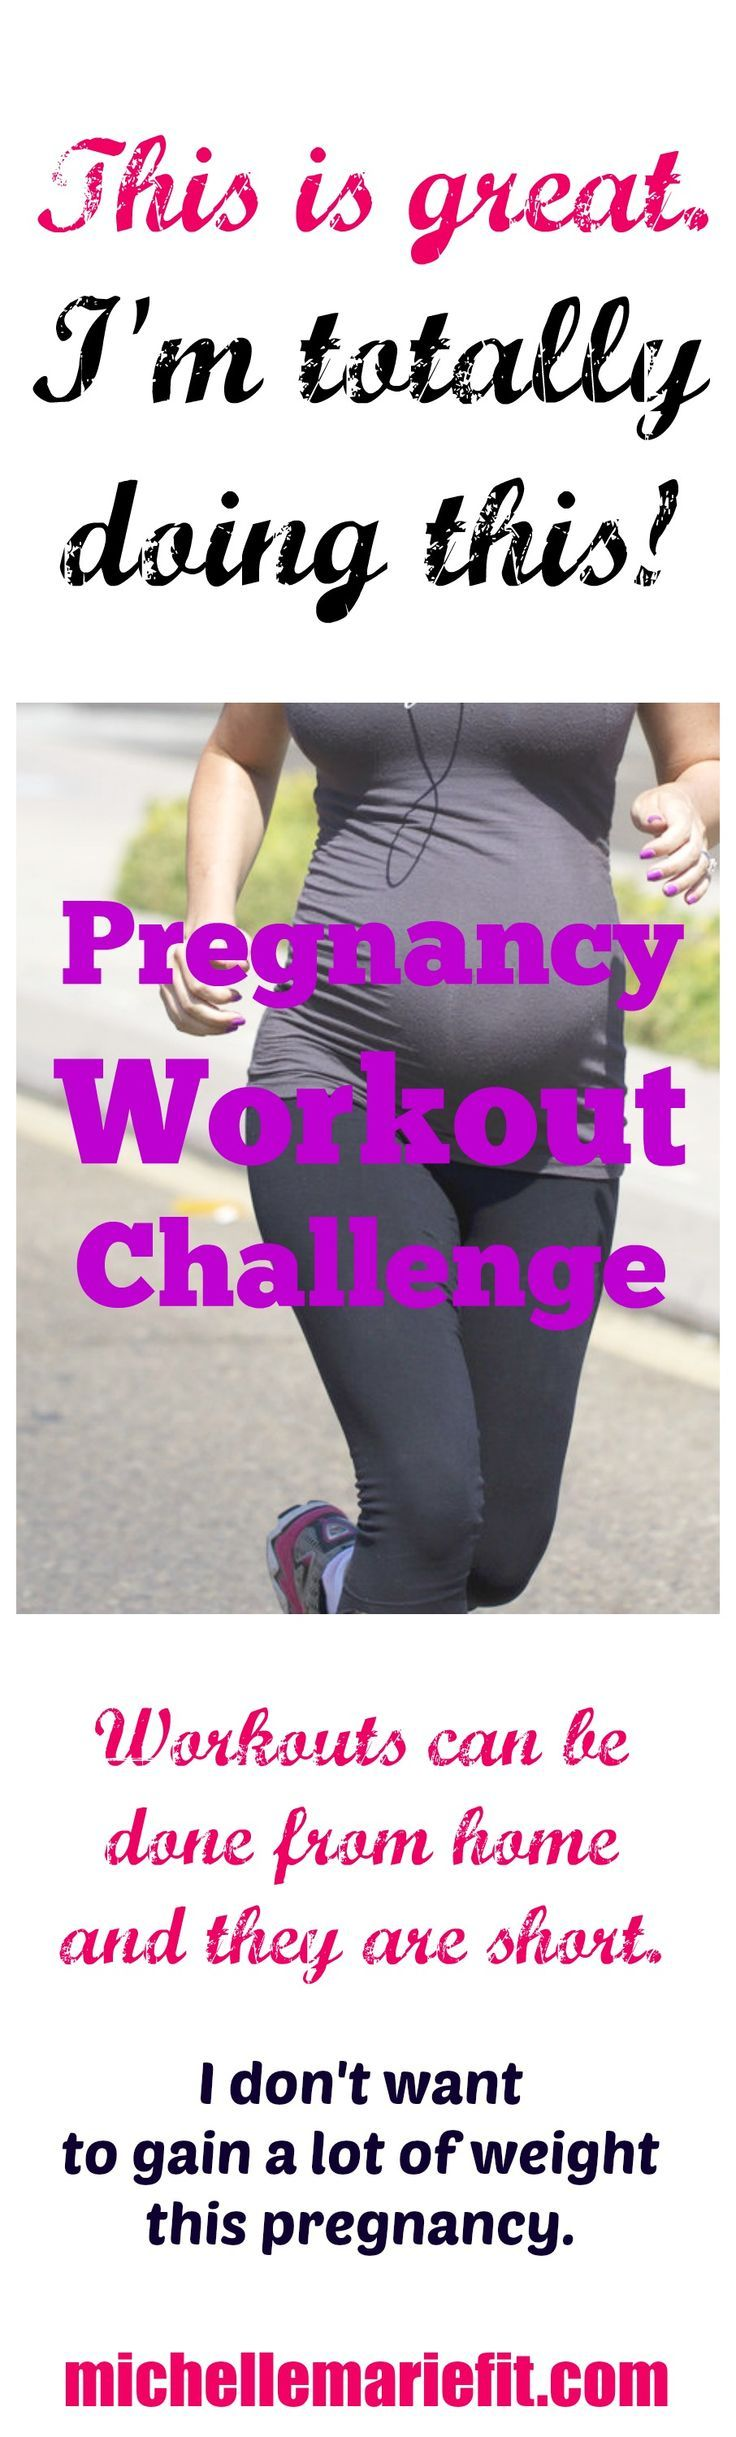 14 Day Jumpstart Pregnancy Workout Challenge Daily workouts and motivation. Pictures and workout videos included  michellemariefit....